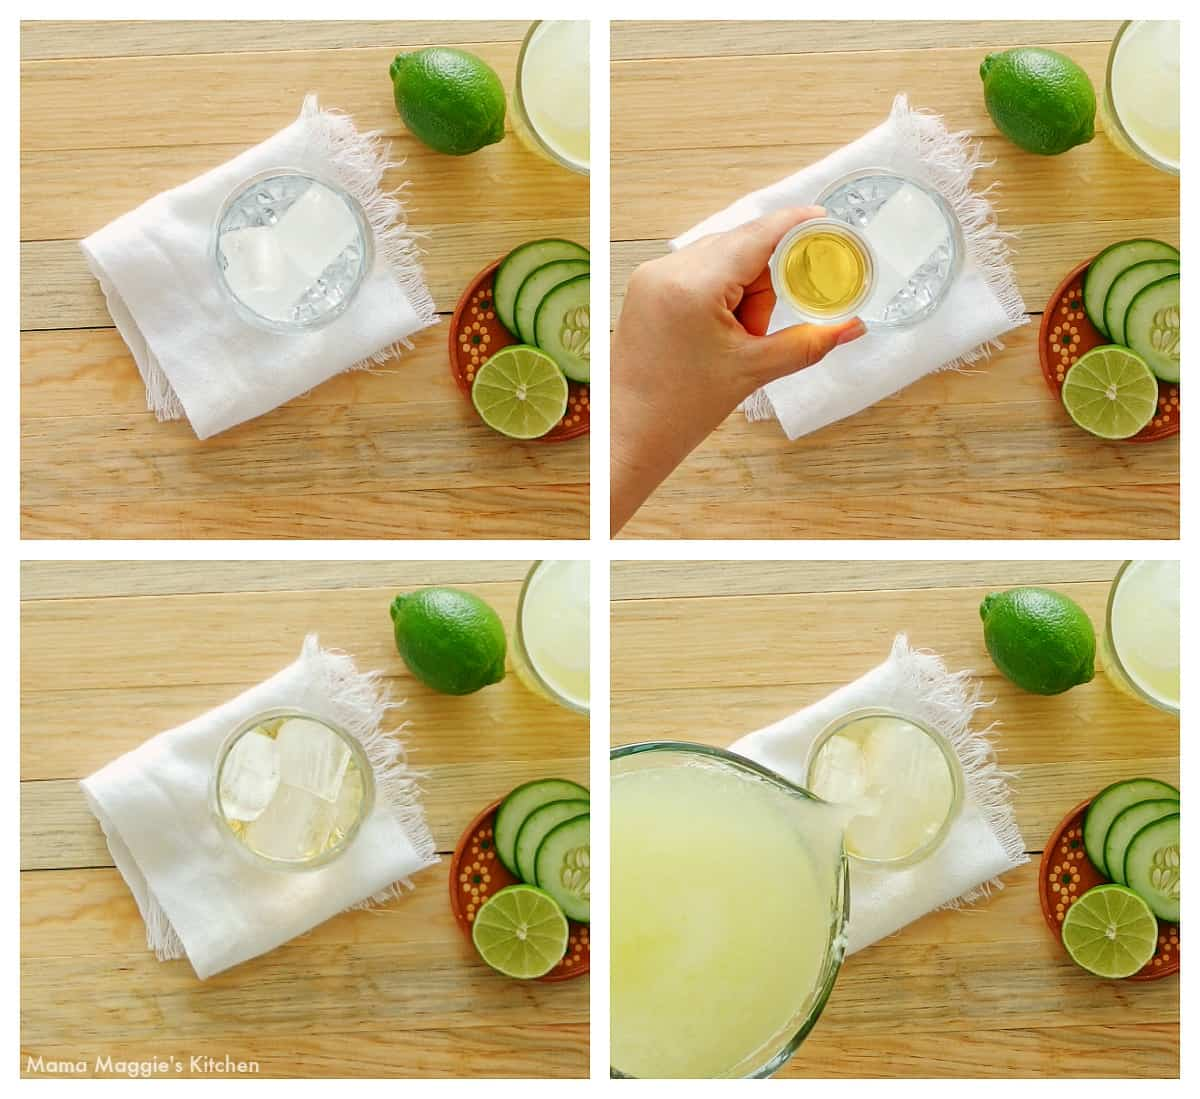 A collage showing how to make the spiked agua fresca cocktail.